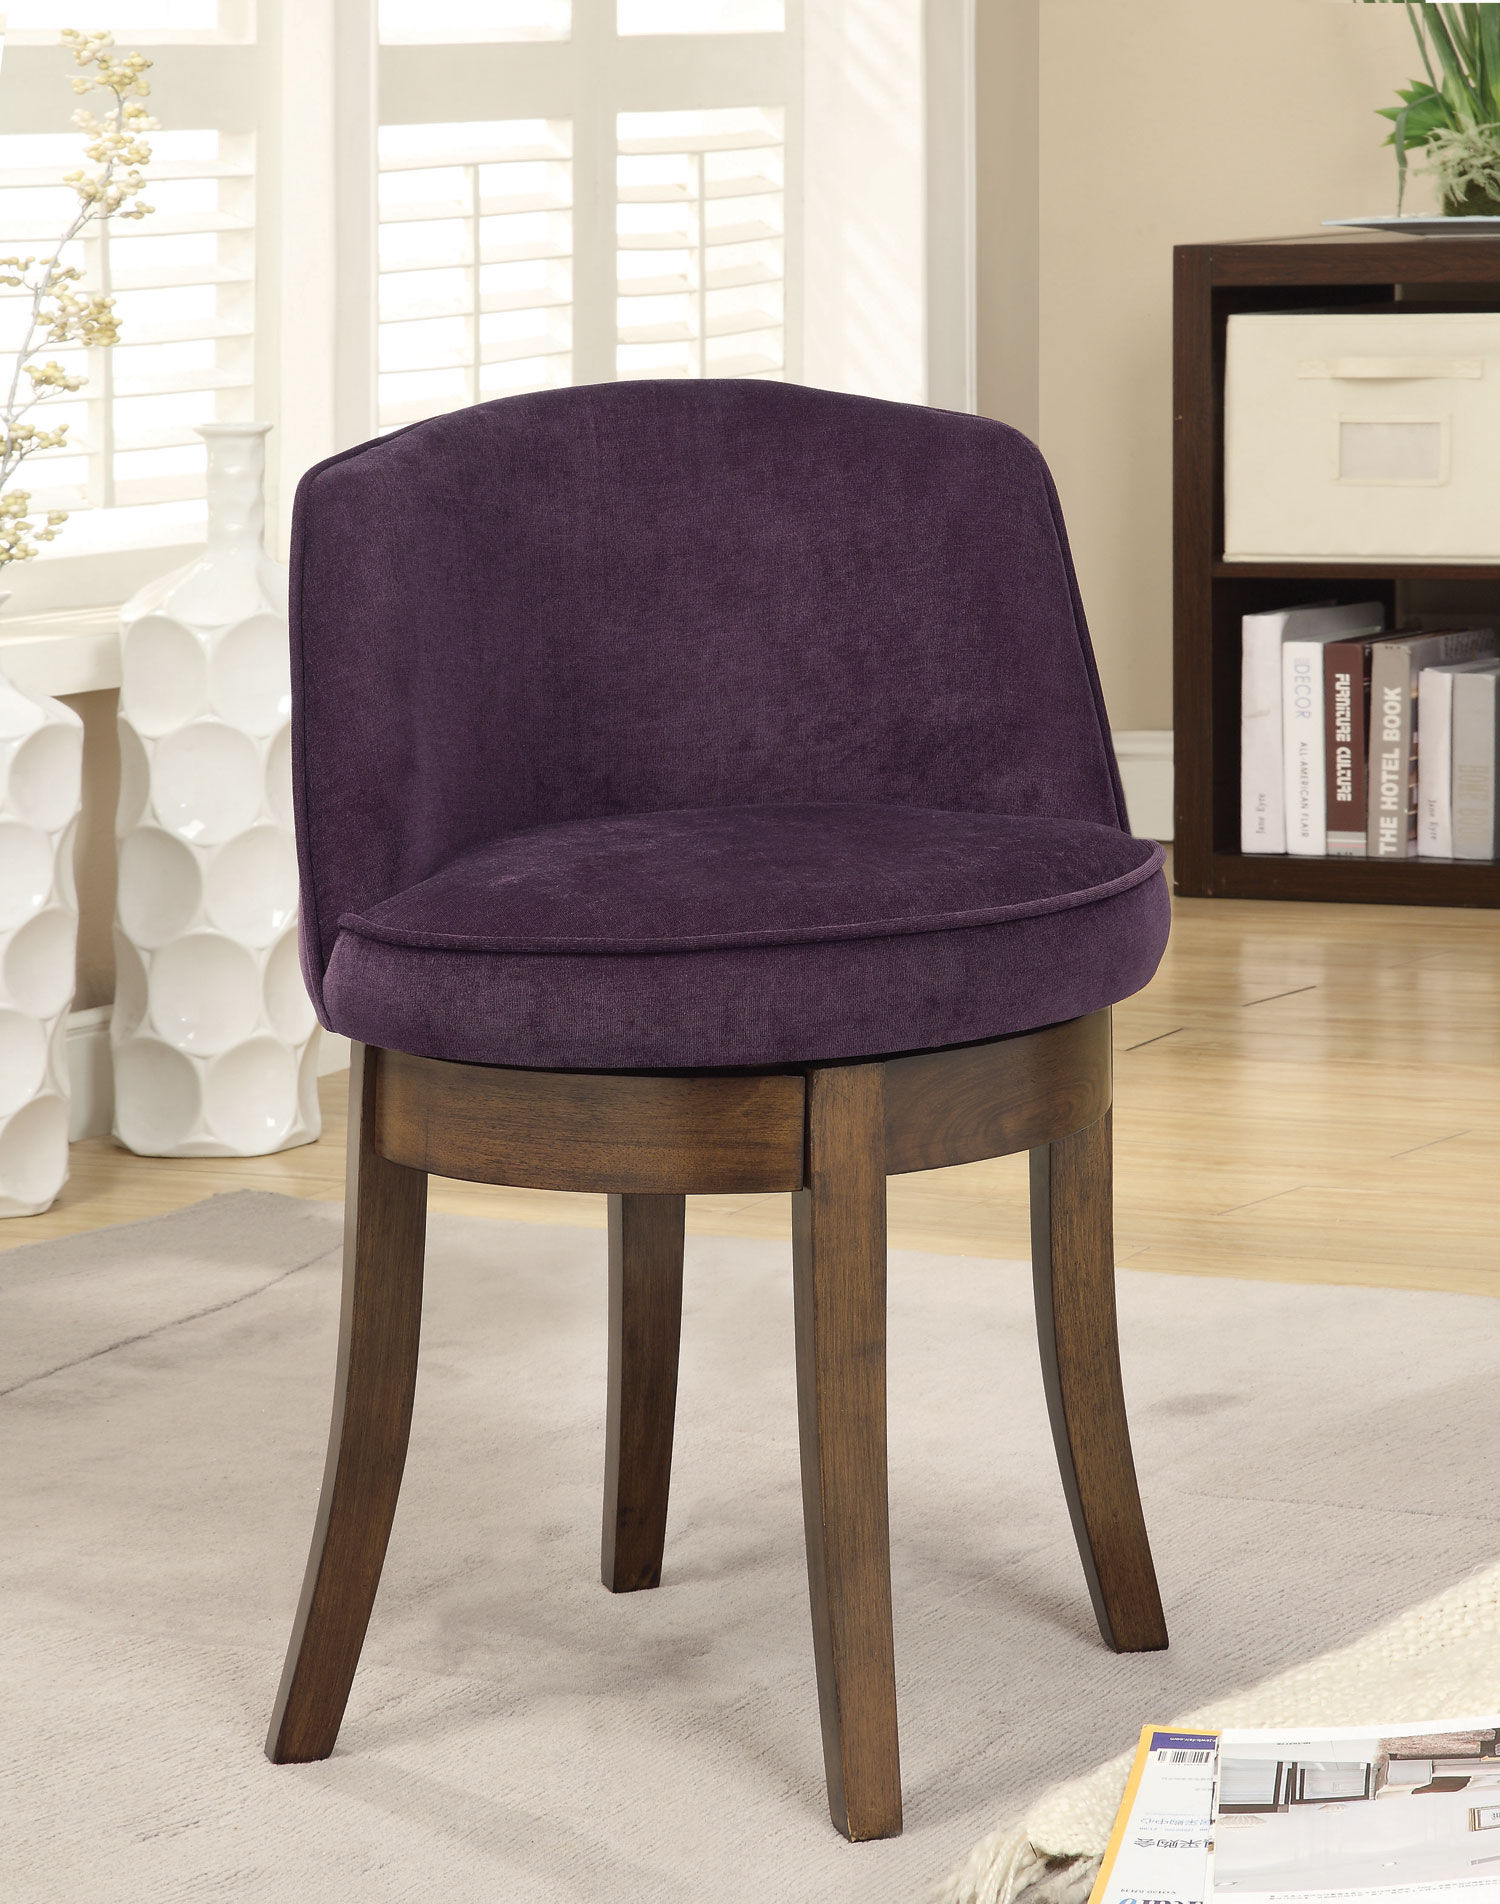 Miraculous Purple Wood Vanity Stool The Classy Home Squirreltailoven Fun Painted Chair Ideas Images Squirreltailovenorg